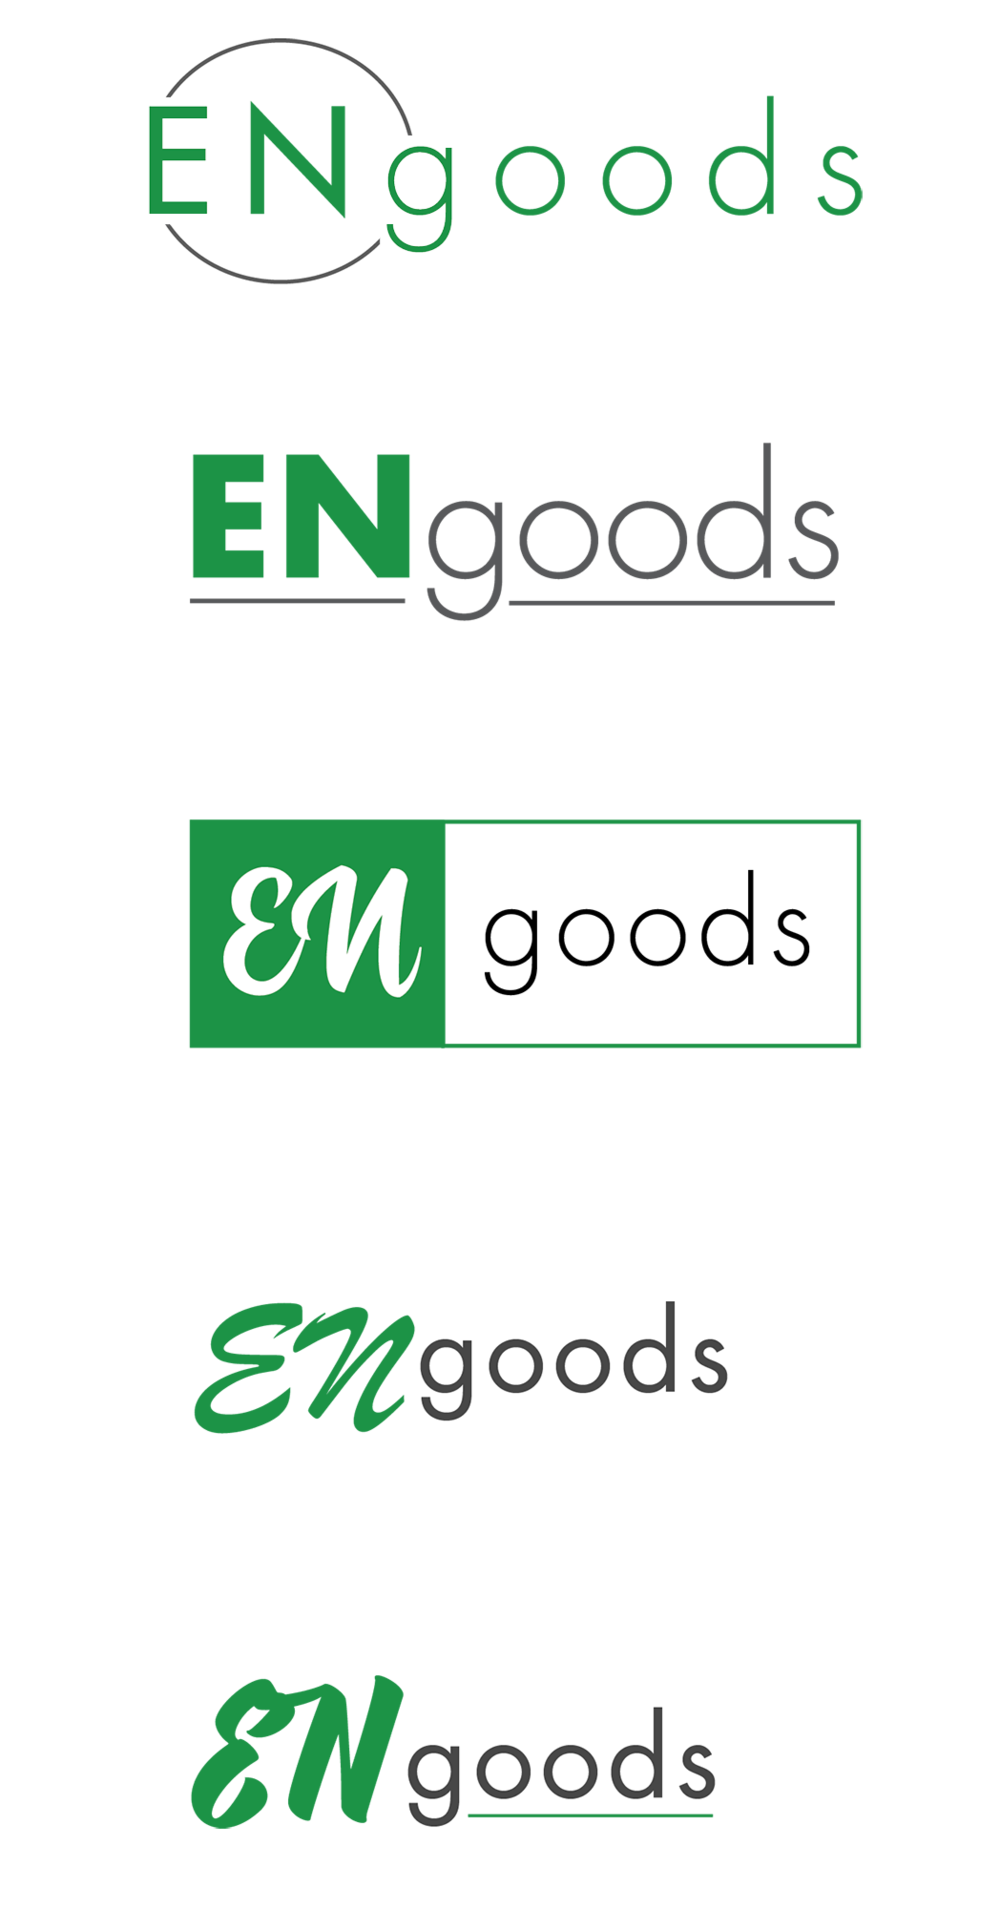 ENgoods-brand-concepts.png